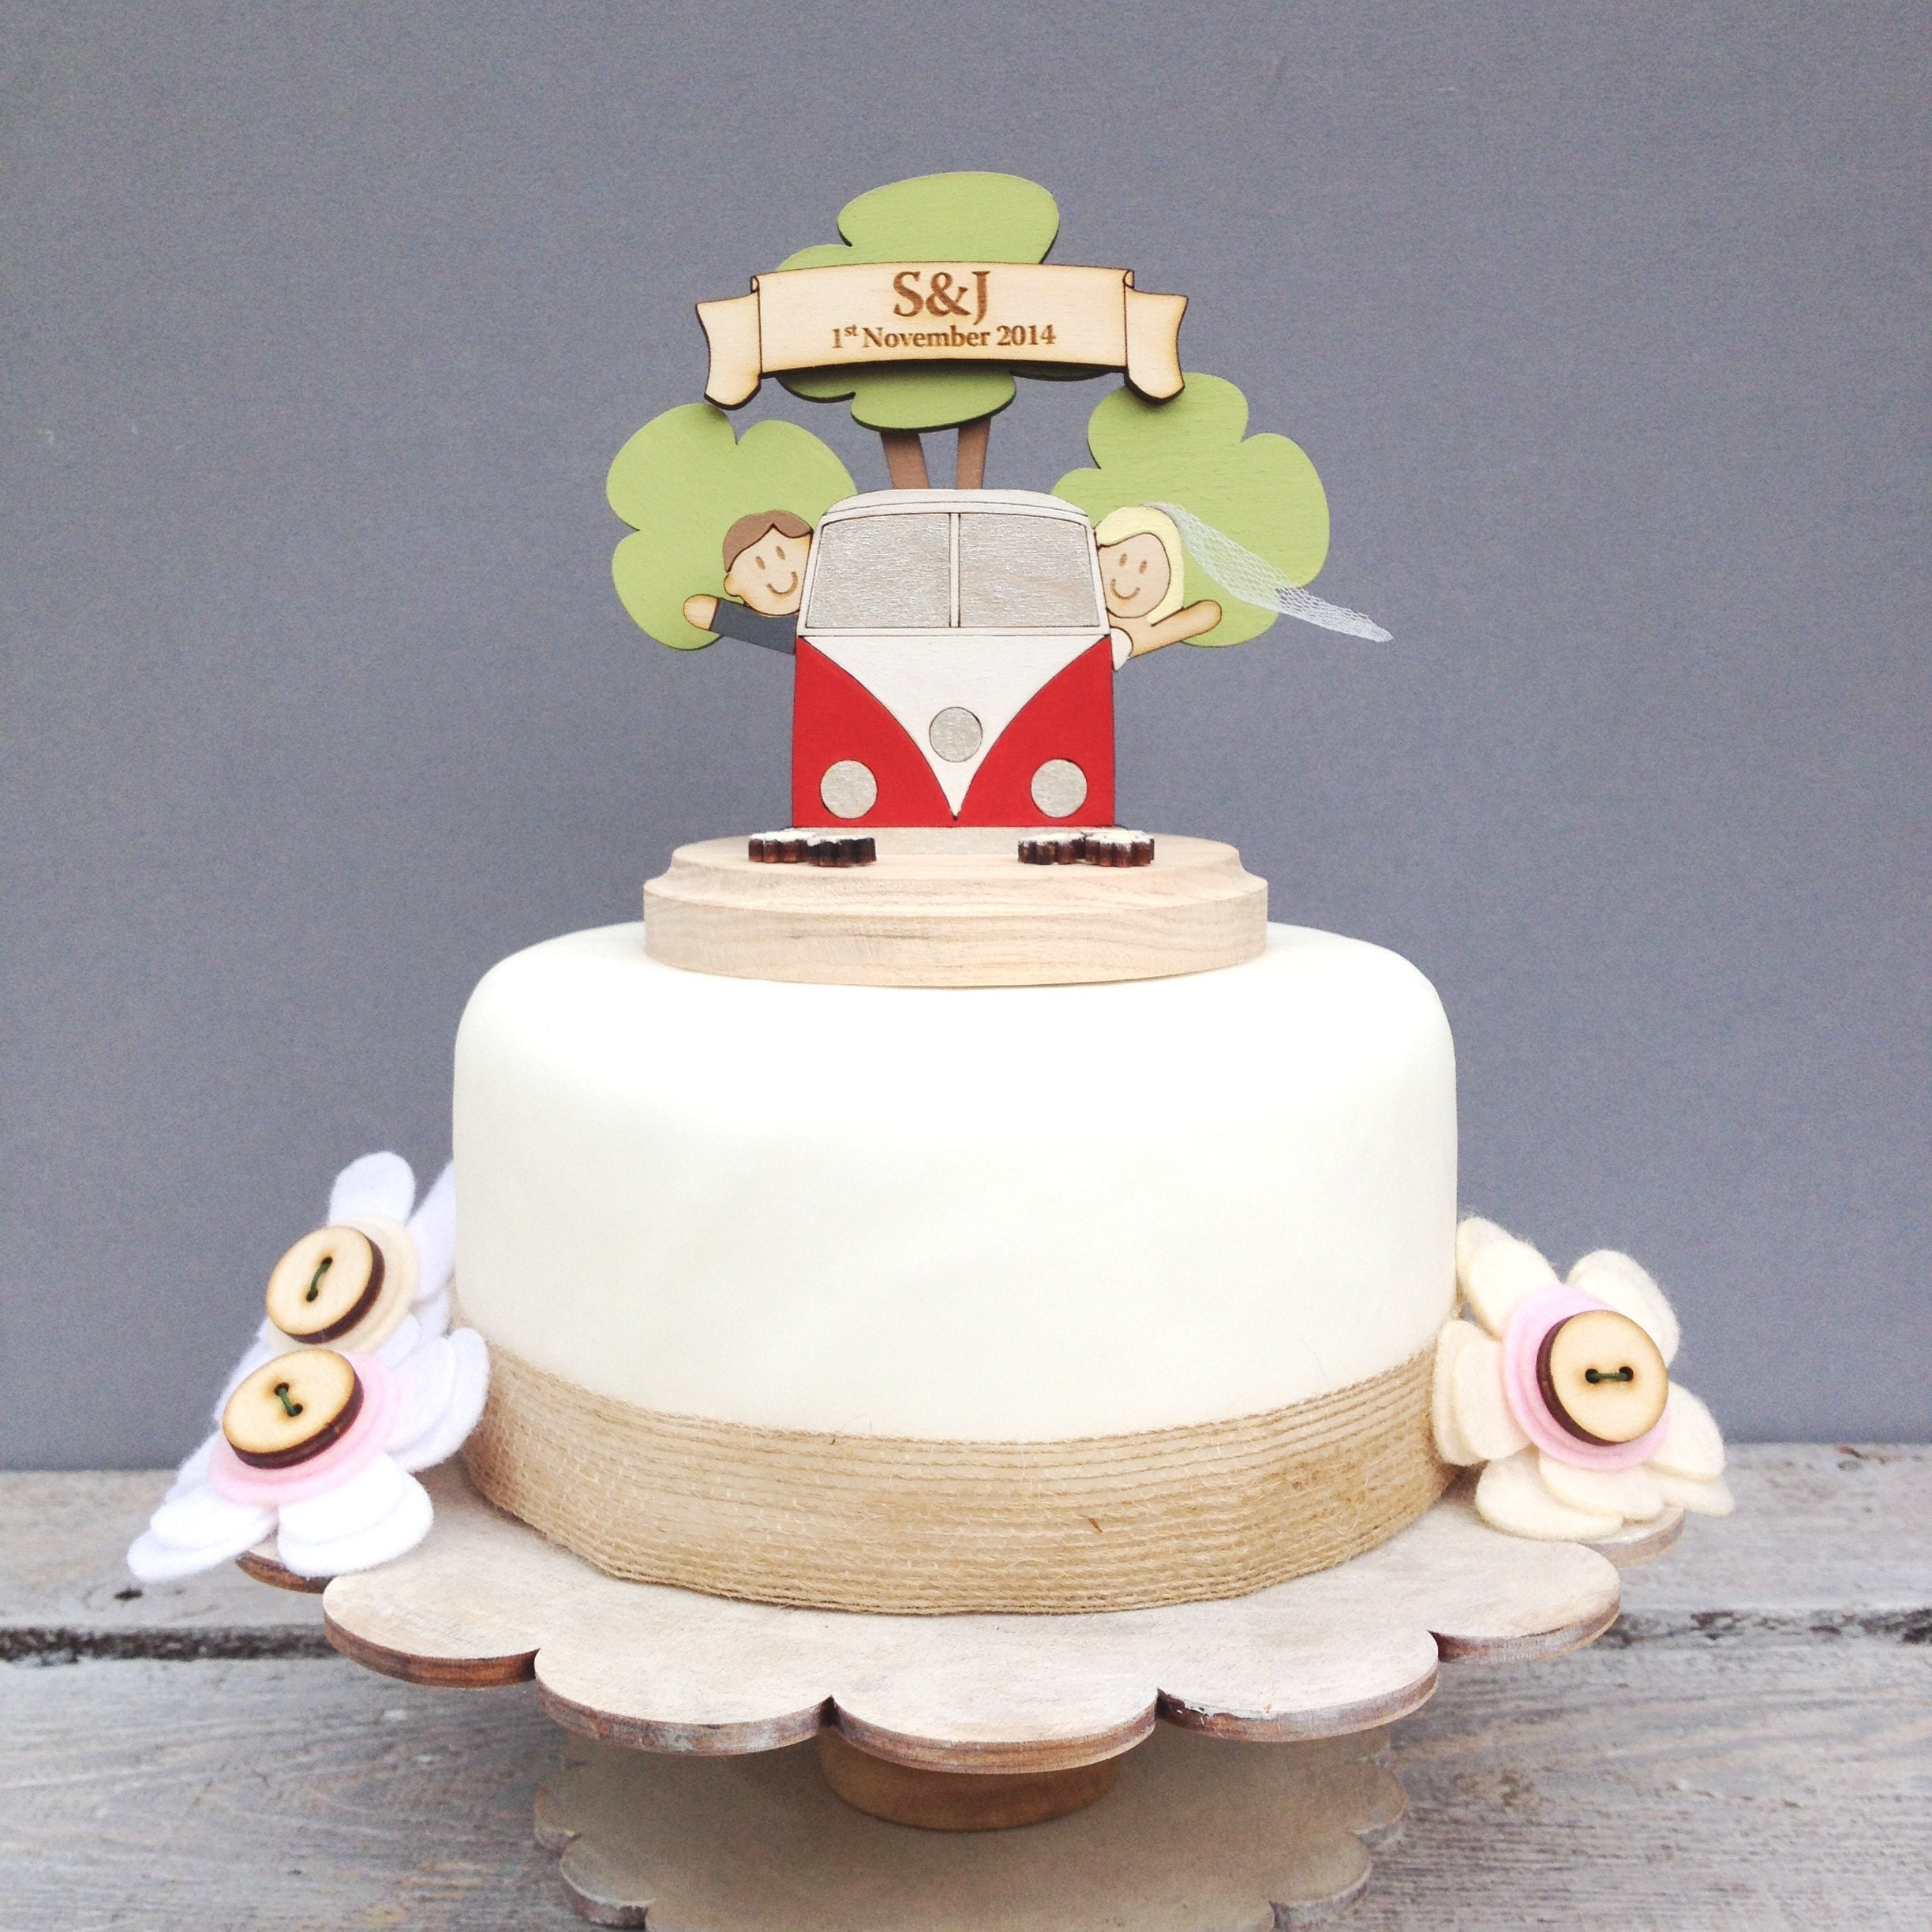 Cake Toppers Etsy Uk : cake toppers and personalised gifts by JustToppersUK on Etsy